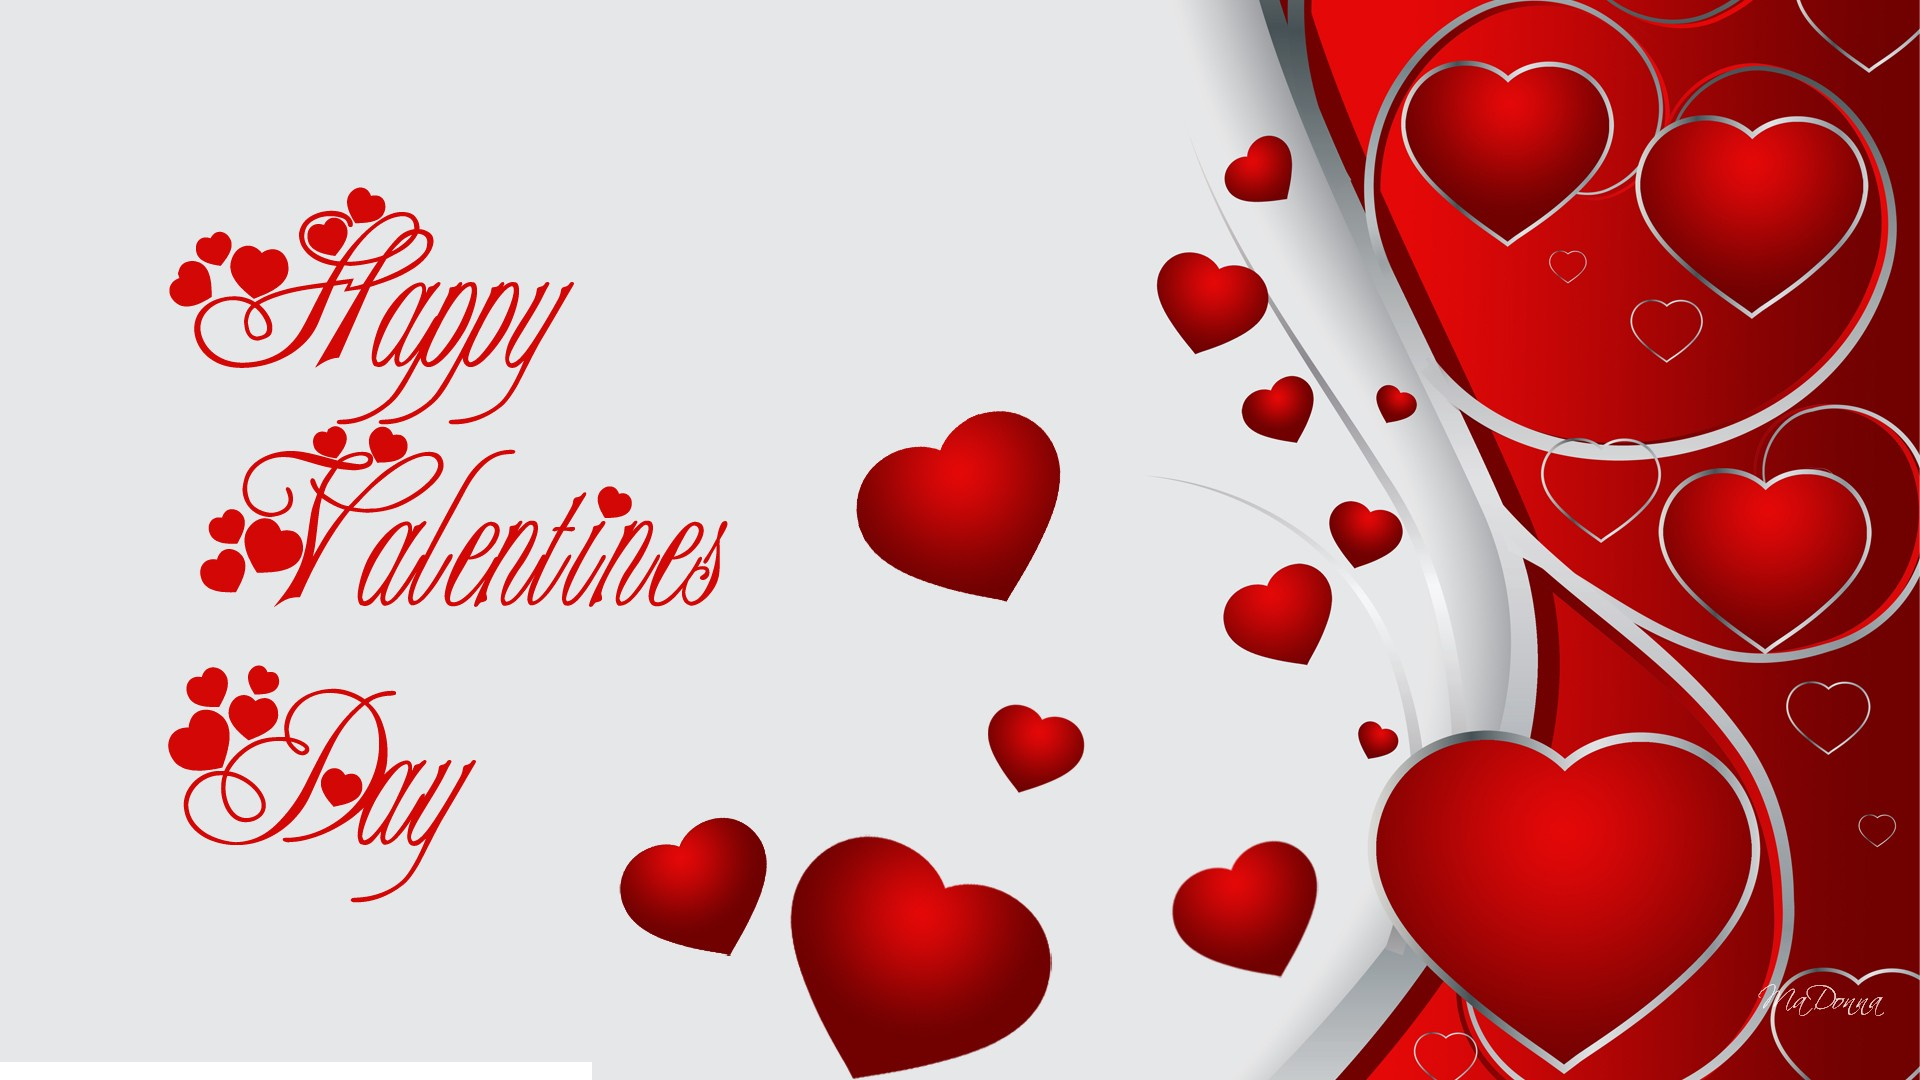 ... Happy Valentine Day Wallpapers Free Download